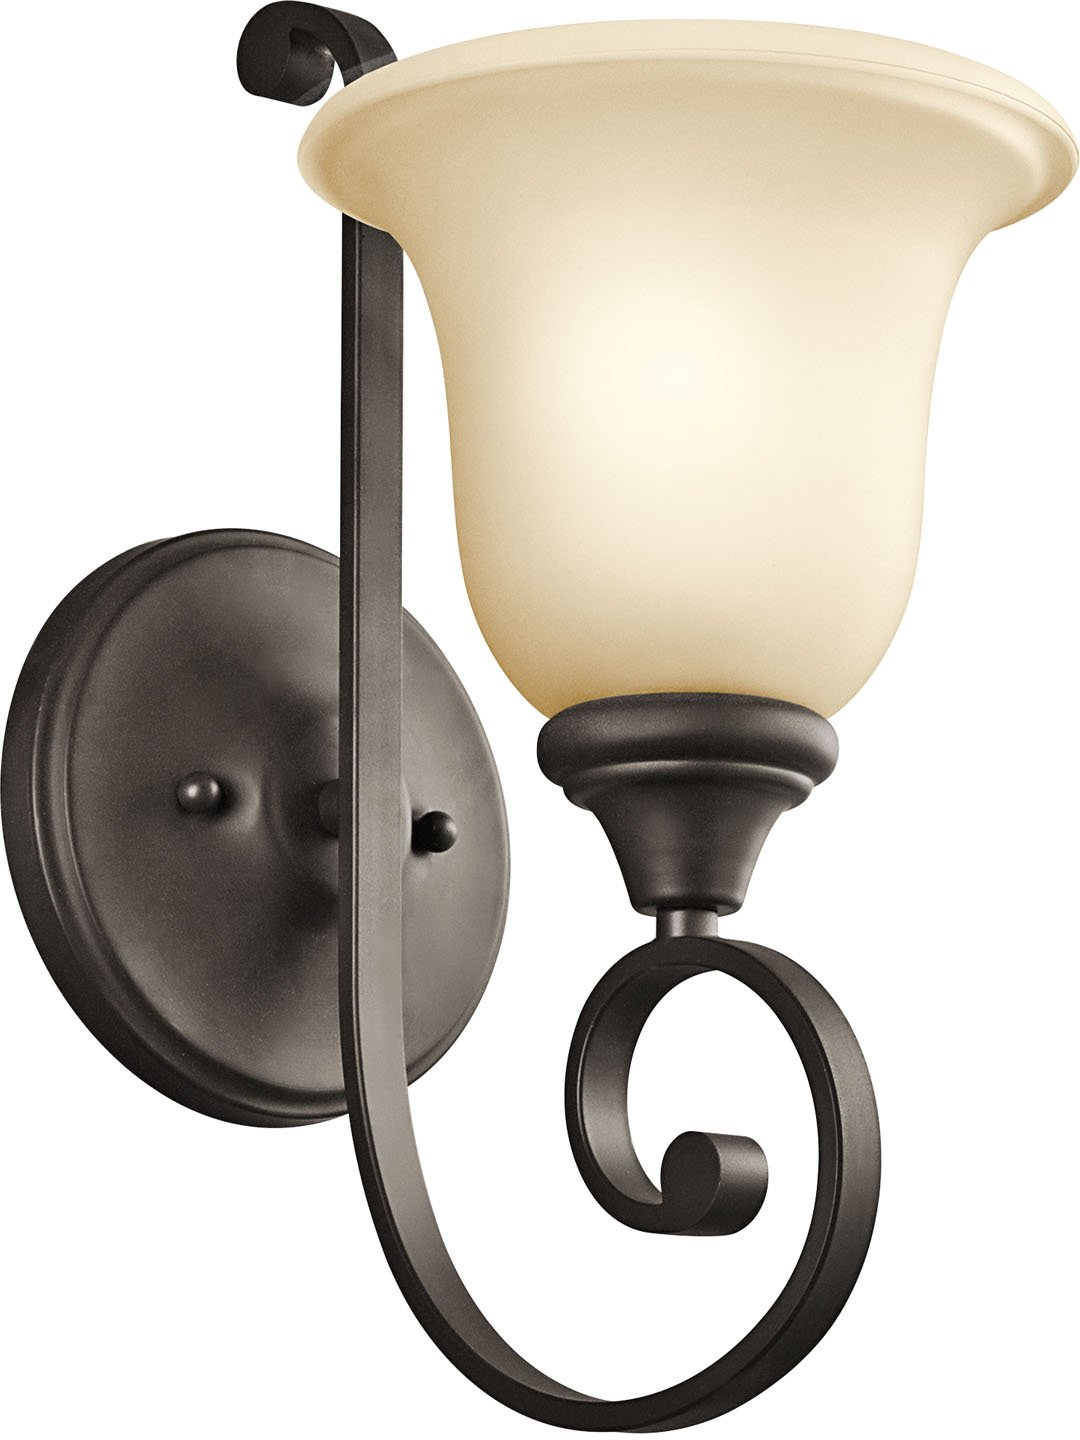 Kichler brushed nickel wall mt 1lt incandescent kichler brushed nickel - Kichler Lighting 43170ni Monroe 1 Light Wall Sconce Brushed Nickel Finish With Satin Etched Glass Bathroom Sconces Satin Nickel Amazon Com